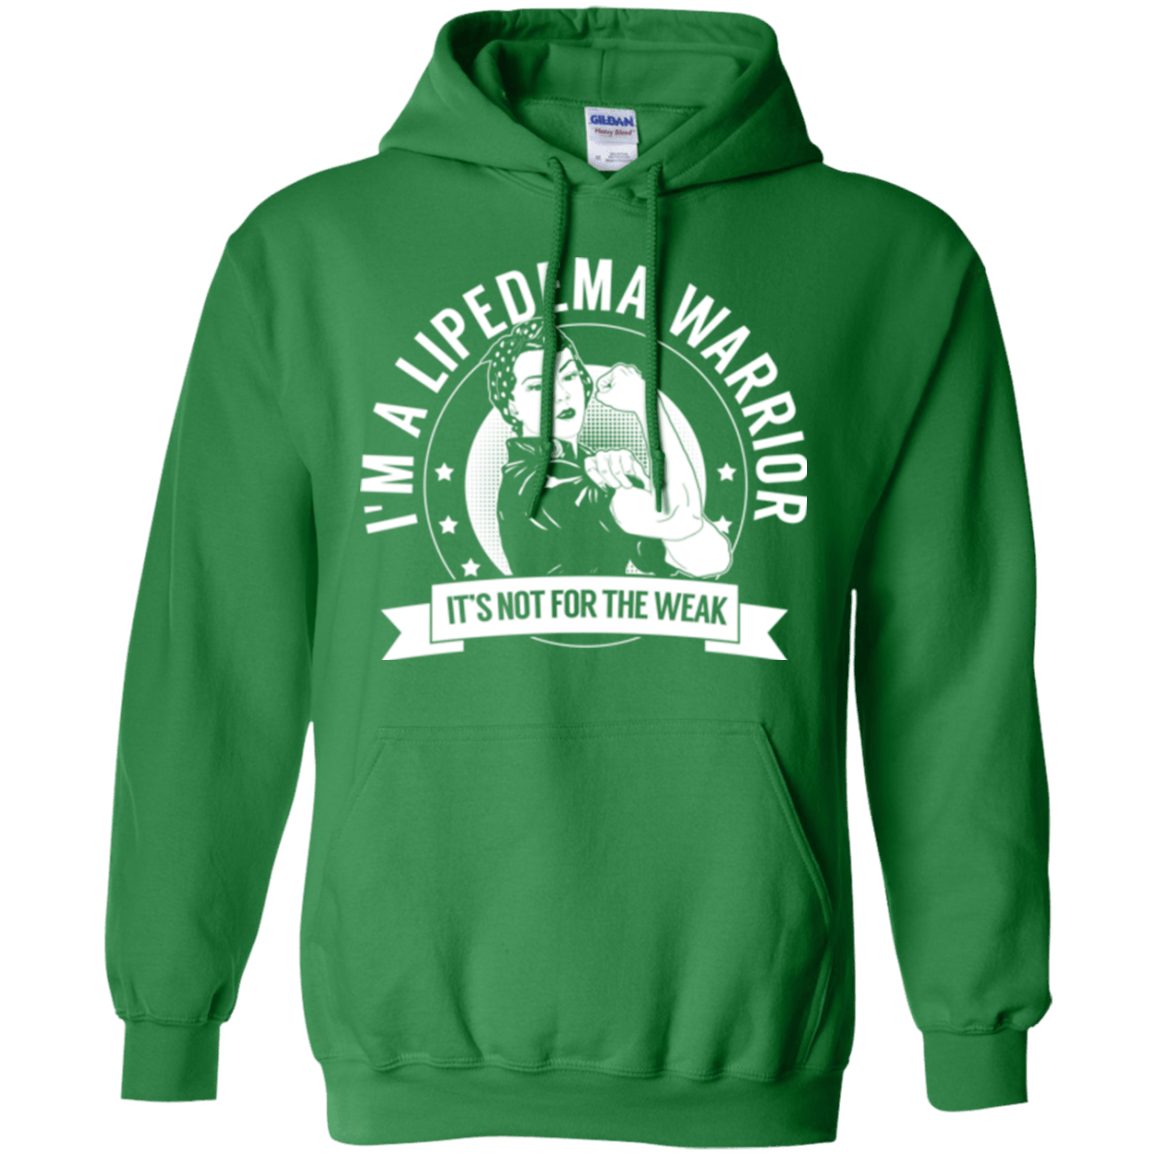 Sweatshirts - Lipedema Warrior Not For The Weak Pullover Hoodie 8 Oz.